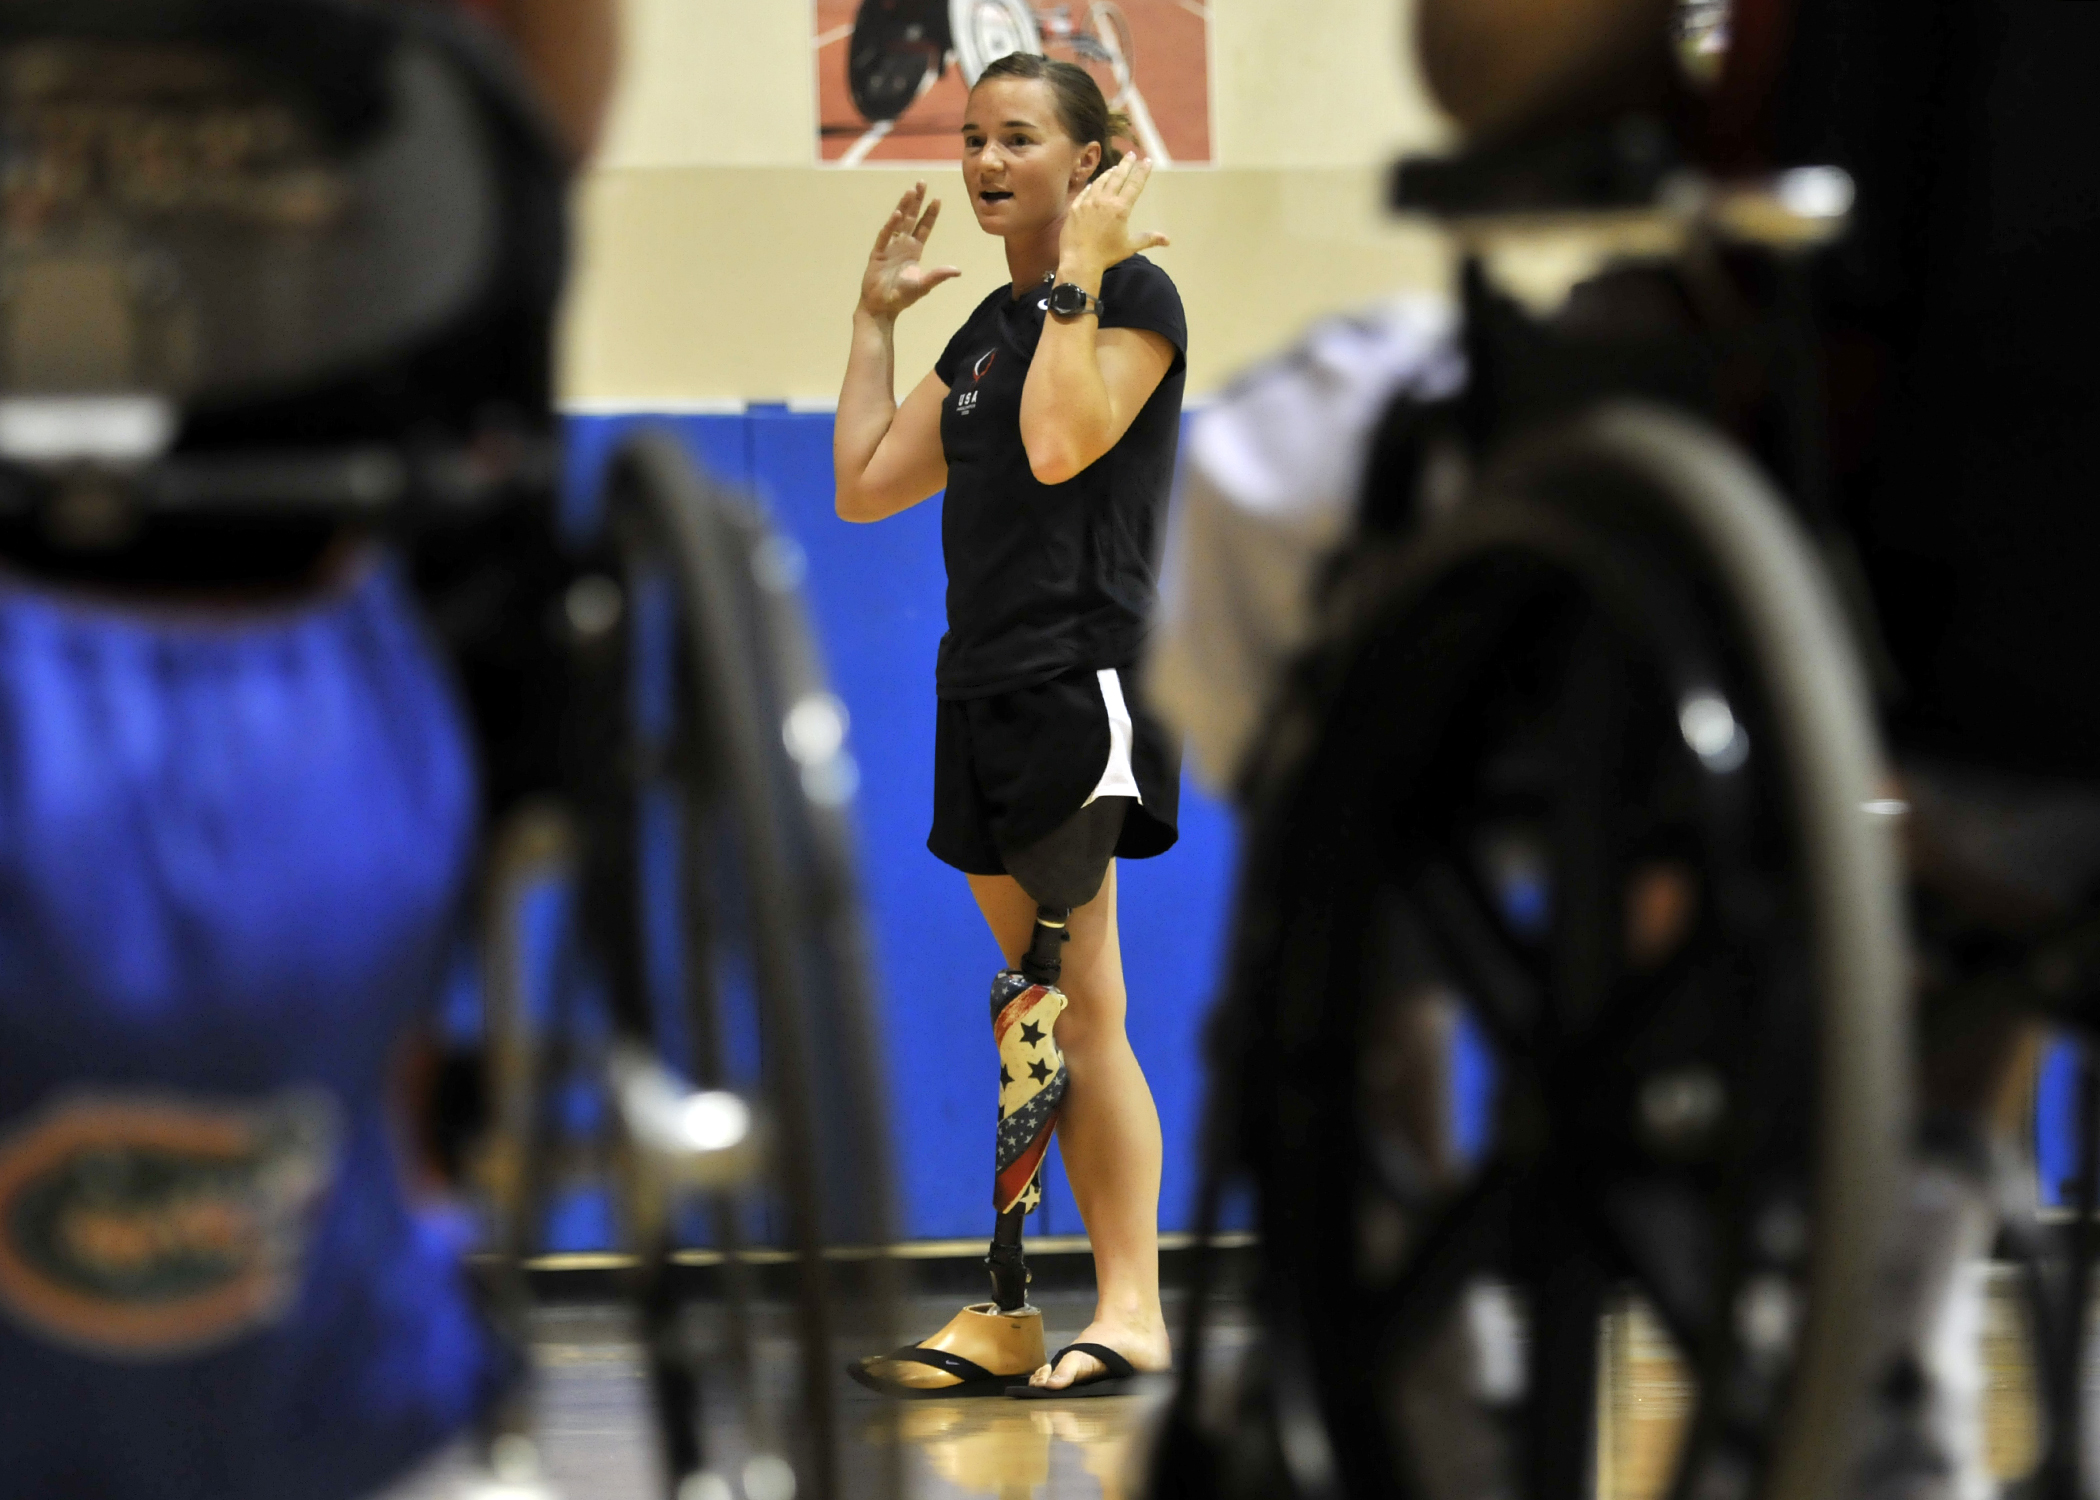 Former Army soldier Melissa Stockwell, speaks to fellow injured service members during one of the annual Paralympic Military Sports Camps at Balboa Naval Medical Center in San Diego.